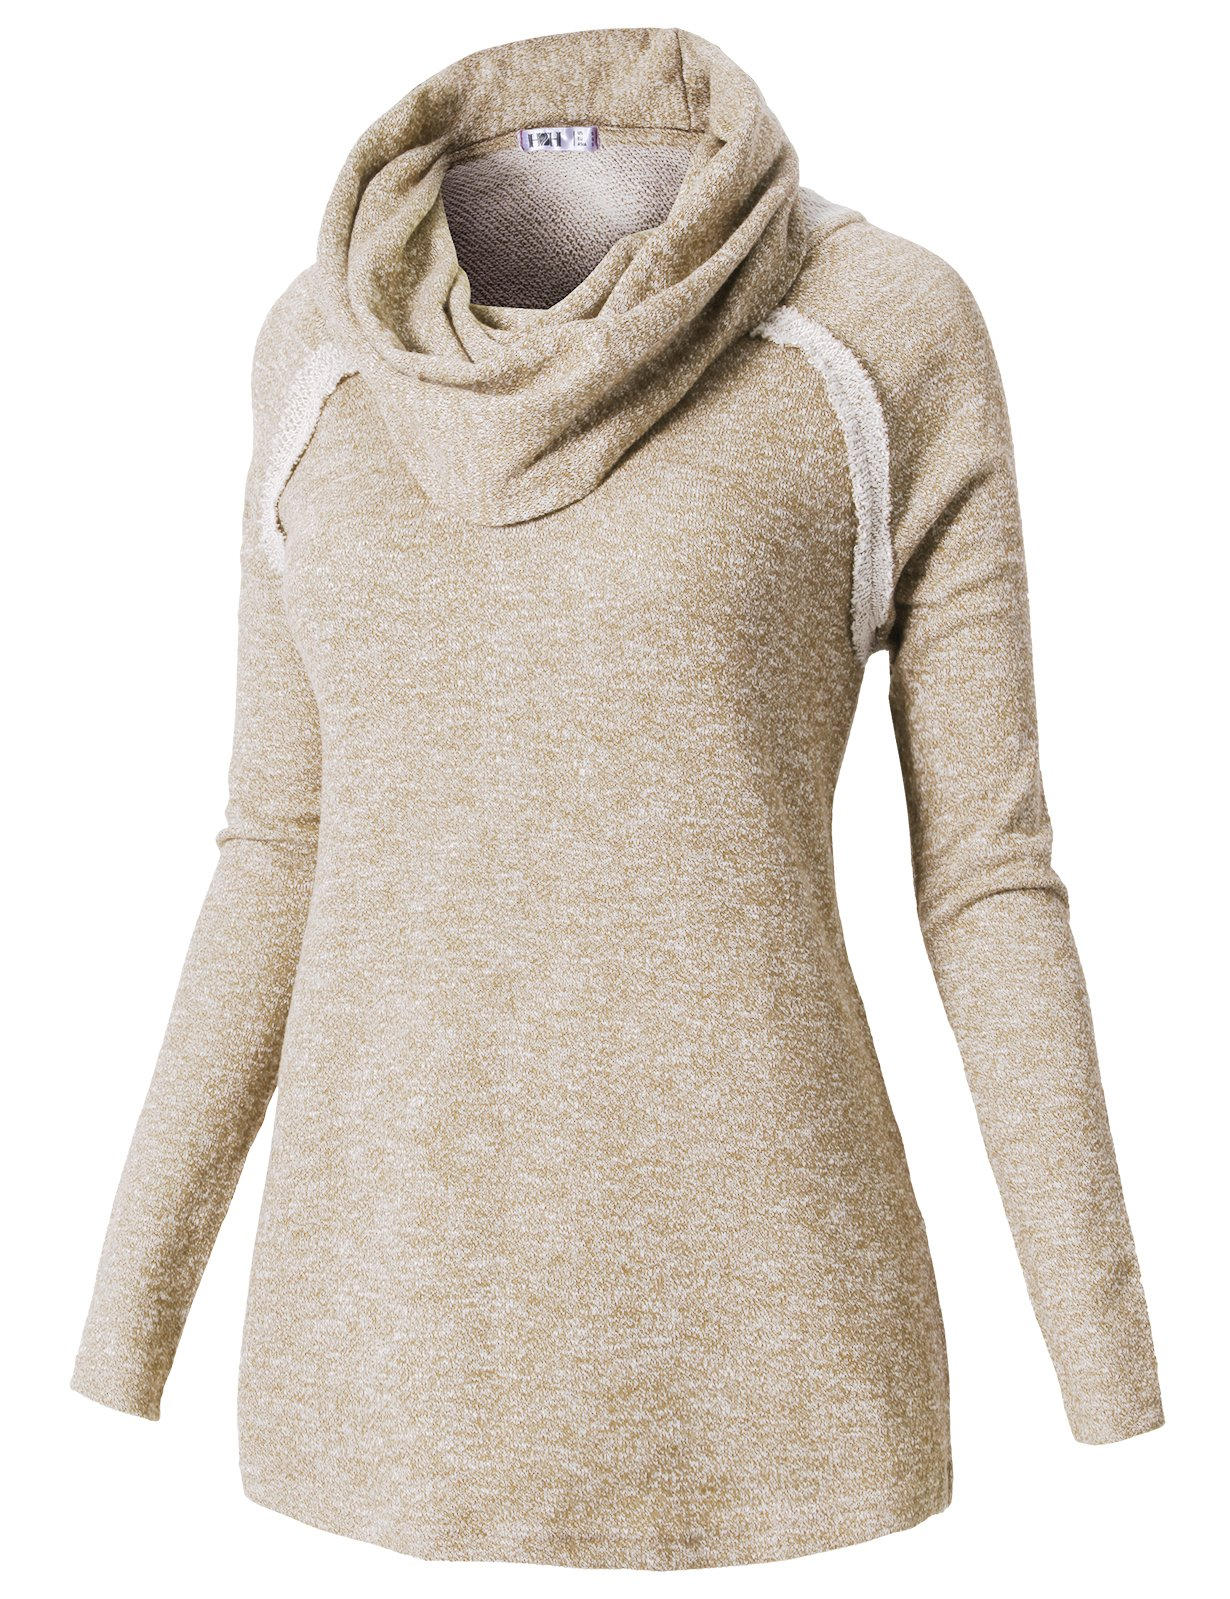 H2H Womens Loose Fit Long Turtle Neck Knitted Sweater Top Beige US XL/Asia XL (CWTTL0187)